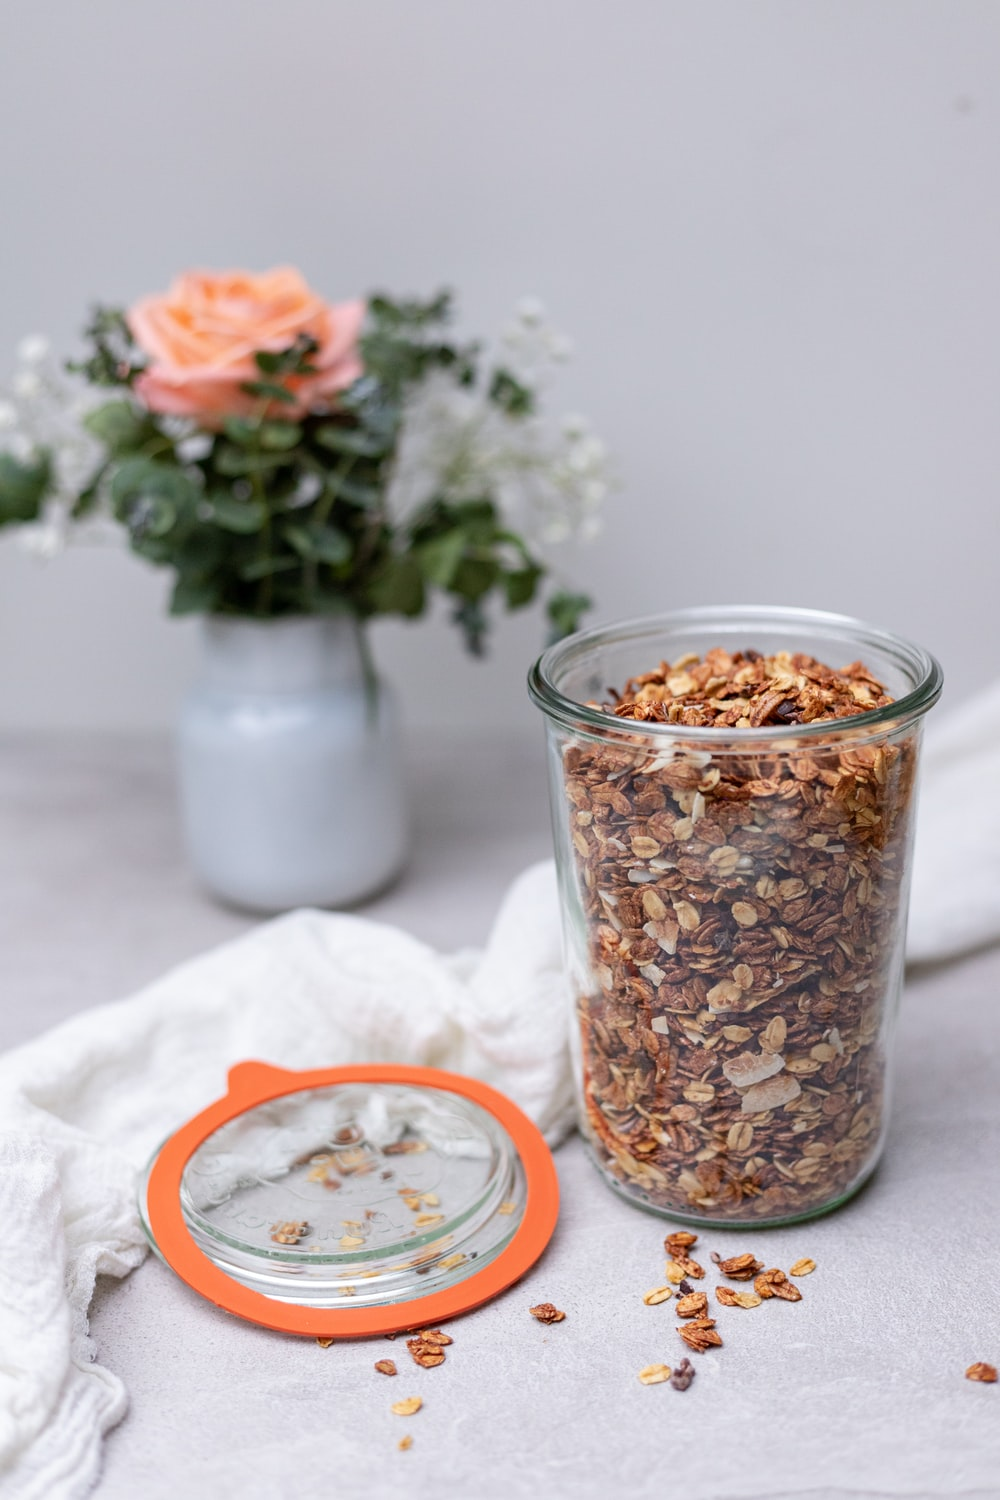 brown and white food in clear glass jar